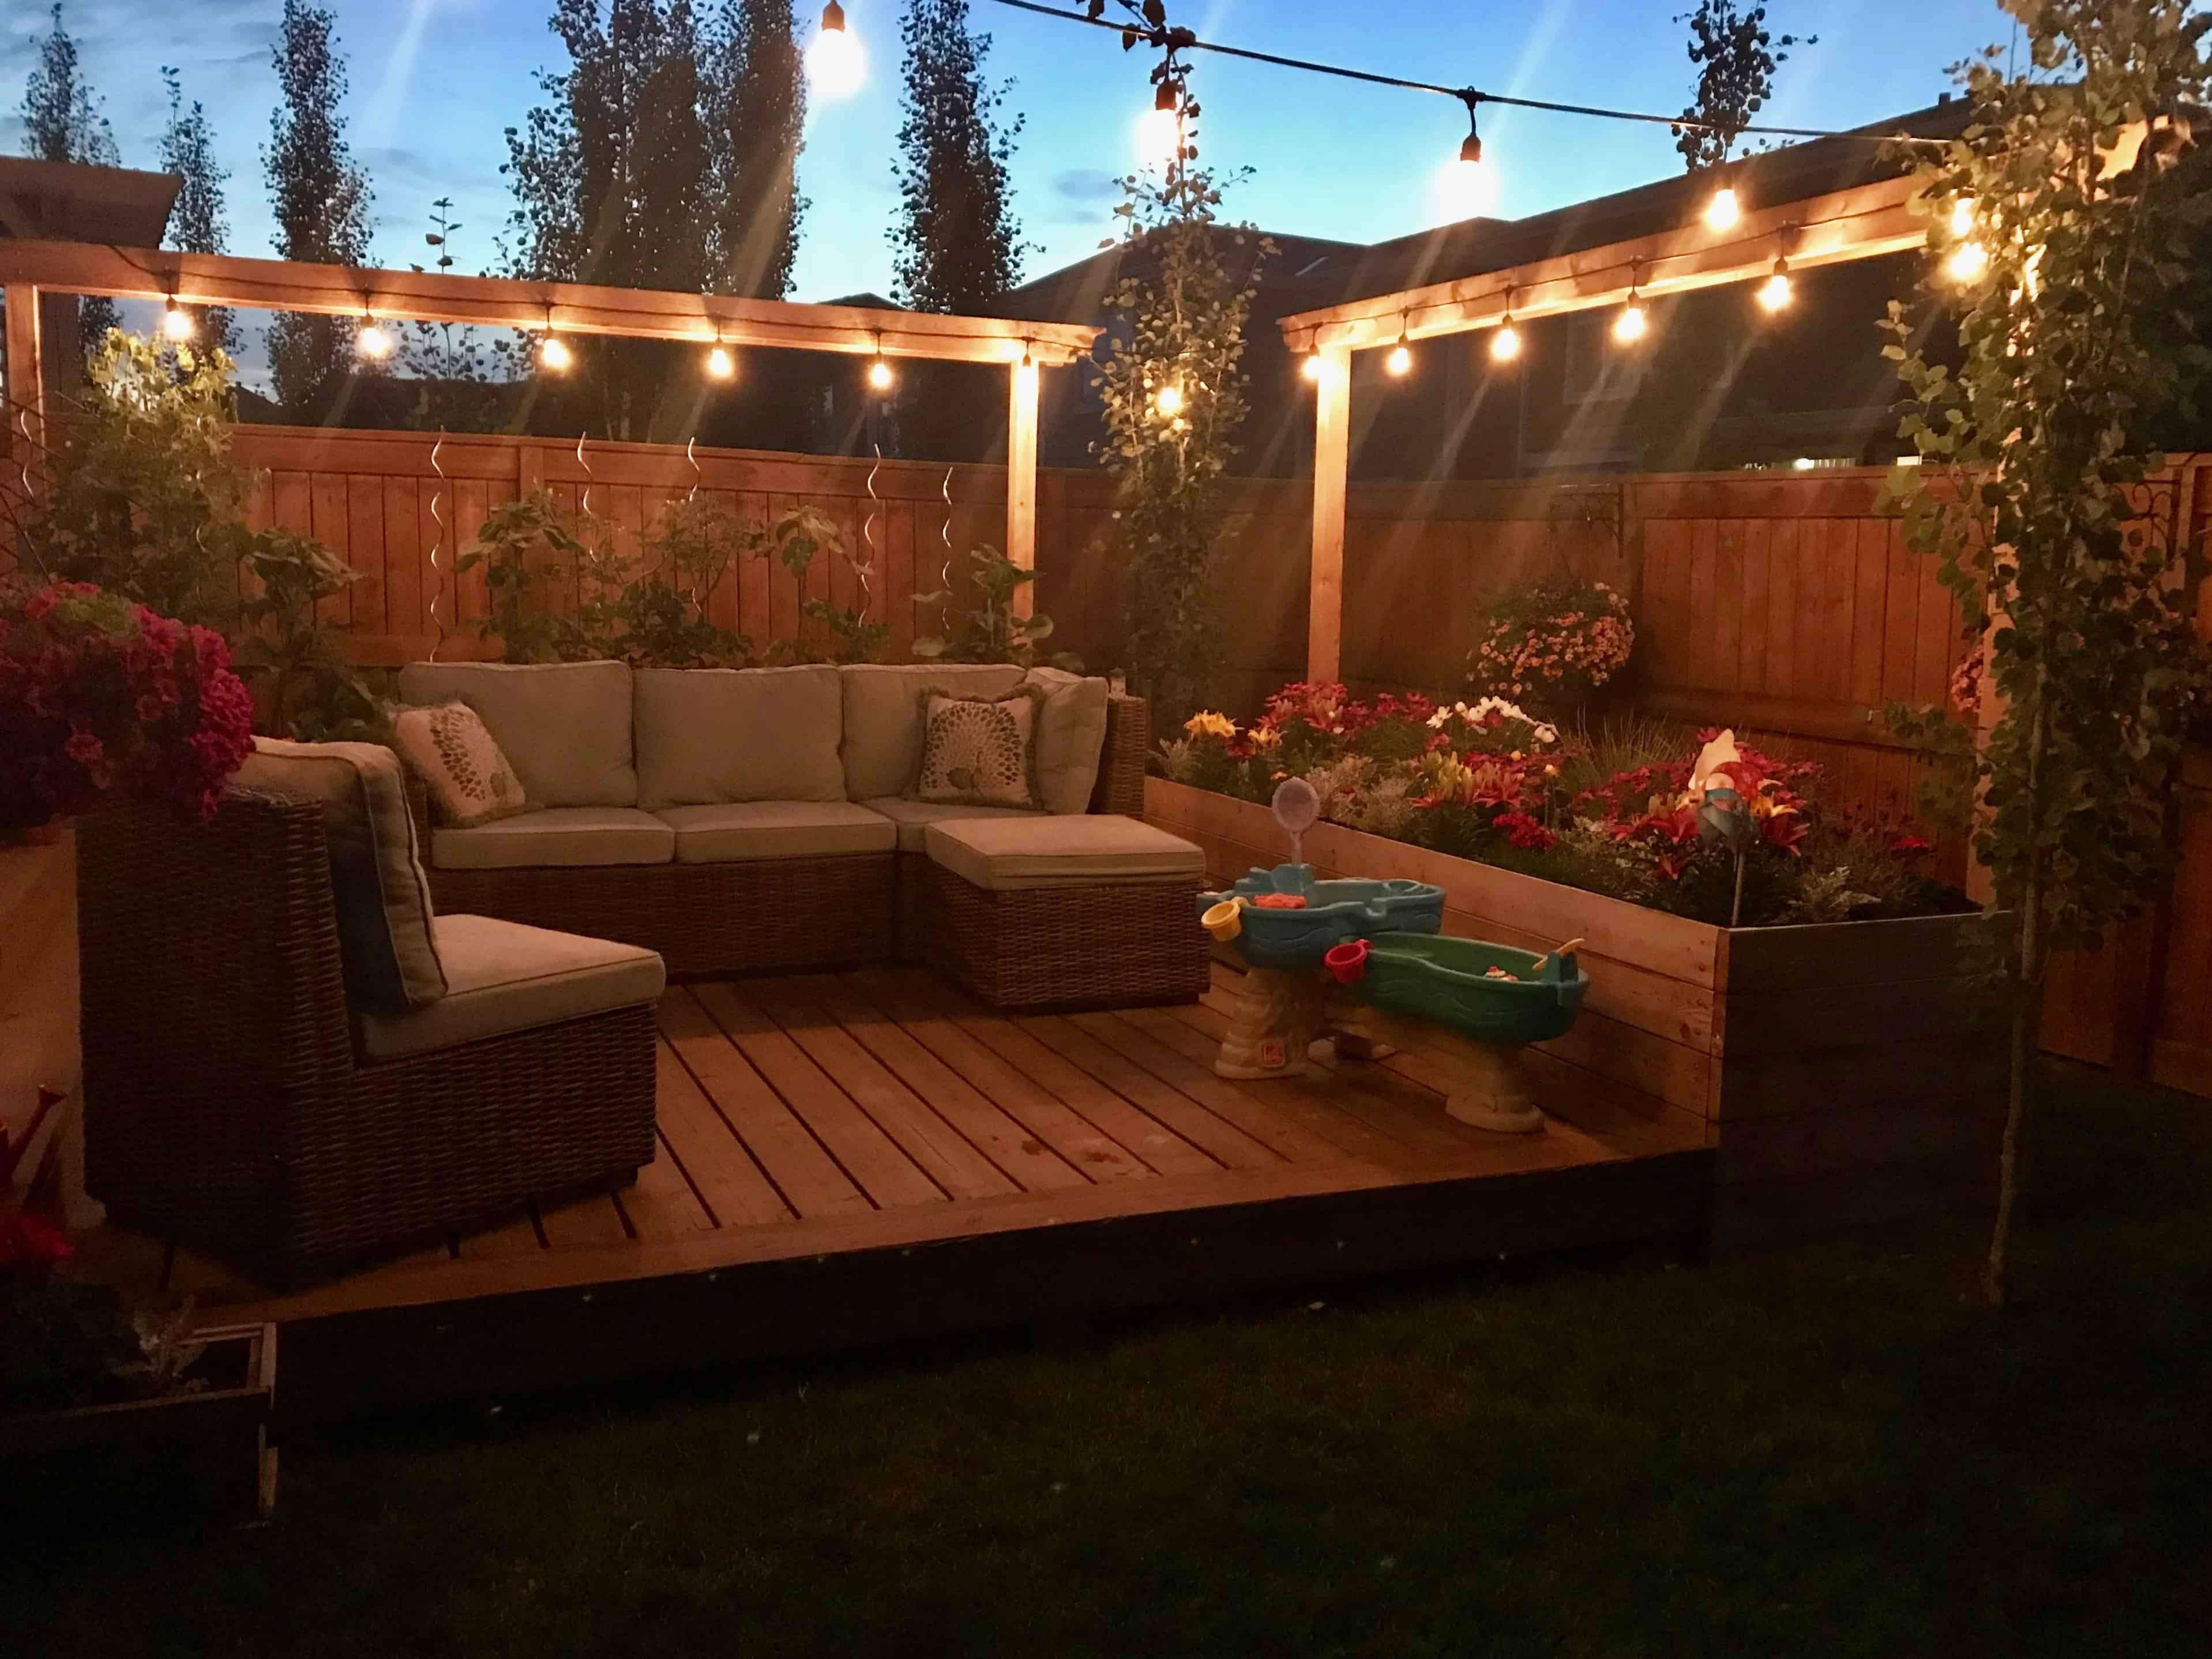 Make the most of your summer by creating a fun space for kids and adults in your own backyard. Check out this post for tips to make your backyard, weather big or small, a fun and inviting place for your family. | family fun | backyard activities | small yard | family memories | backyard for kids | #smallbackyard #kidfriendlybackyard #ourhappyhive